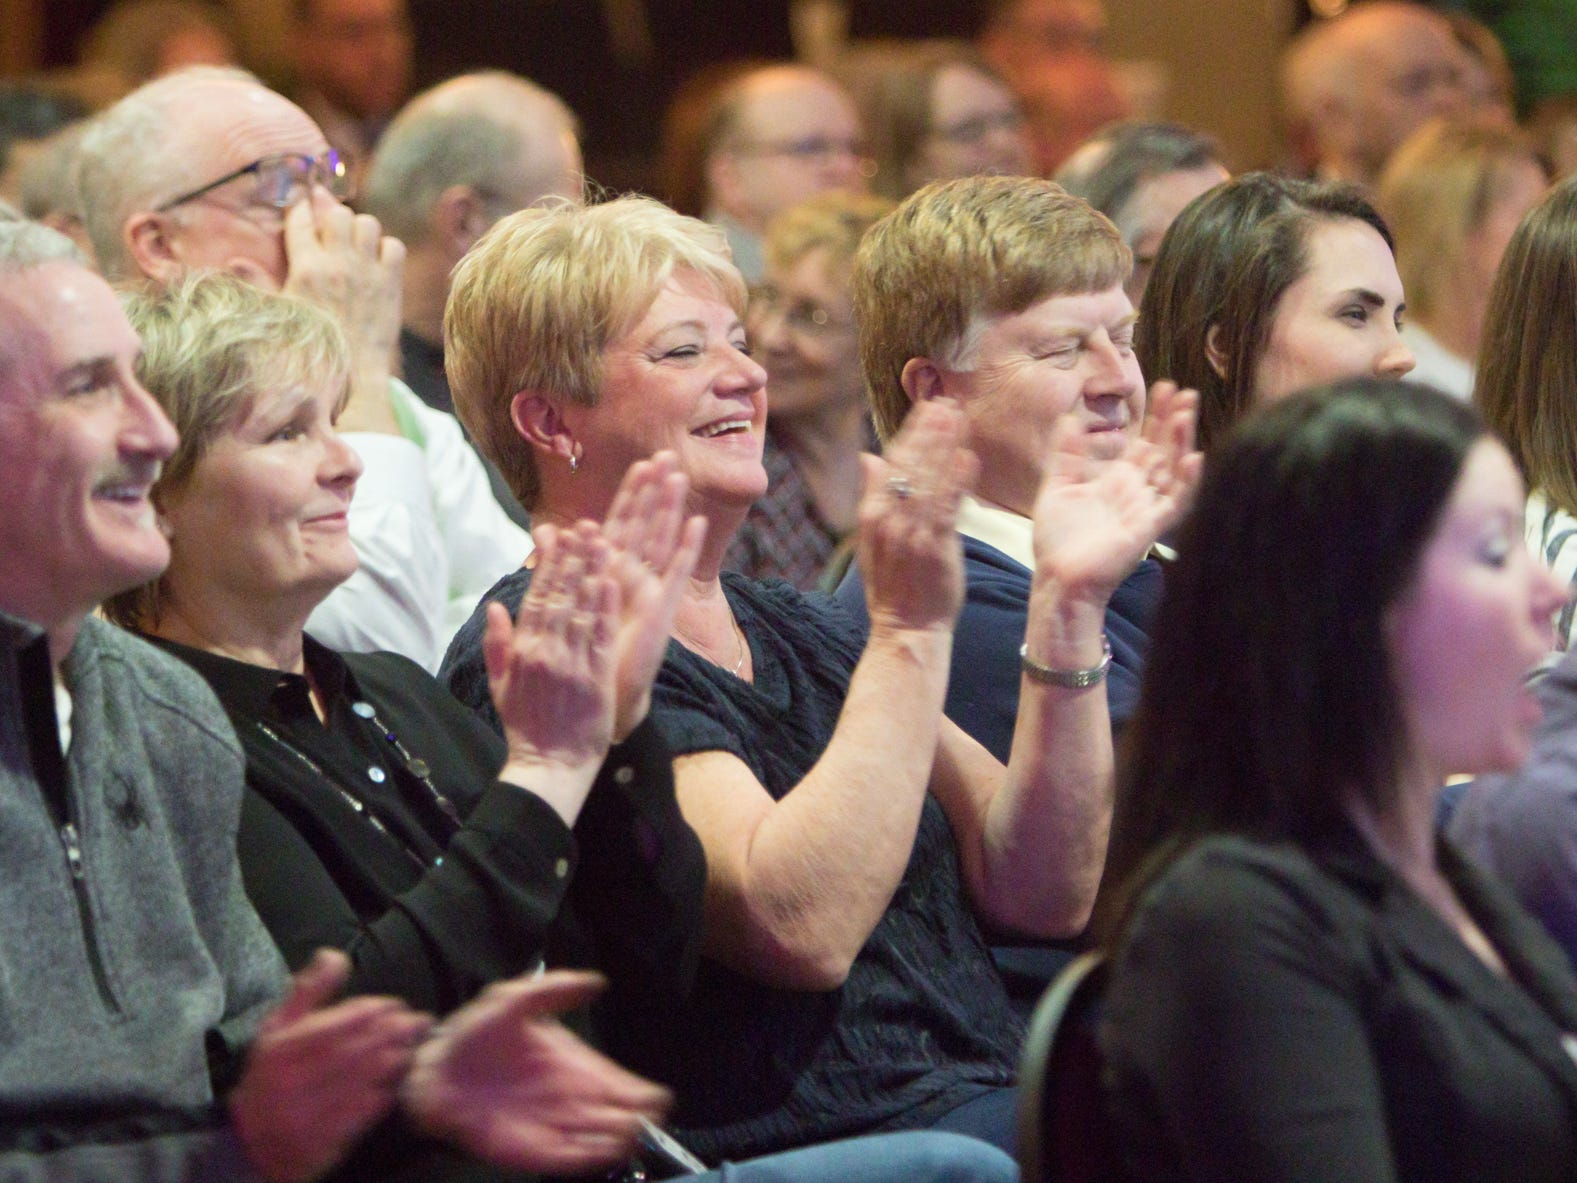 Audience members laugh and applaud the comedy of Harry Artin Berberian at Love, INC's comedy night fundraiser Thursday, March 14, 2019.